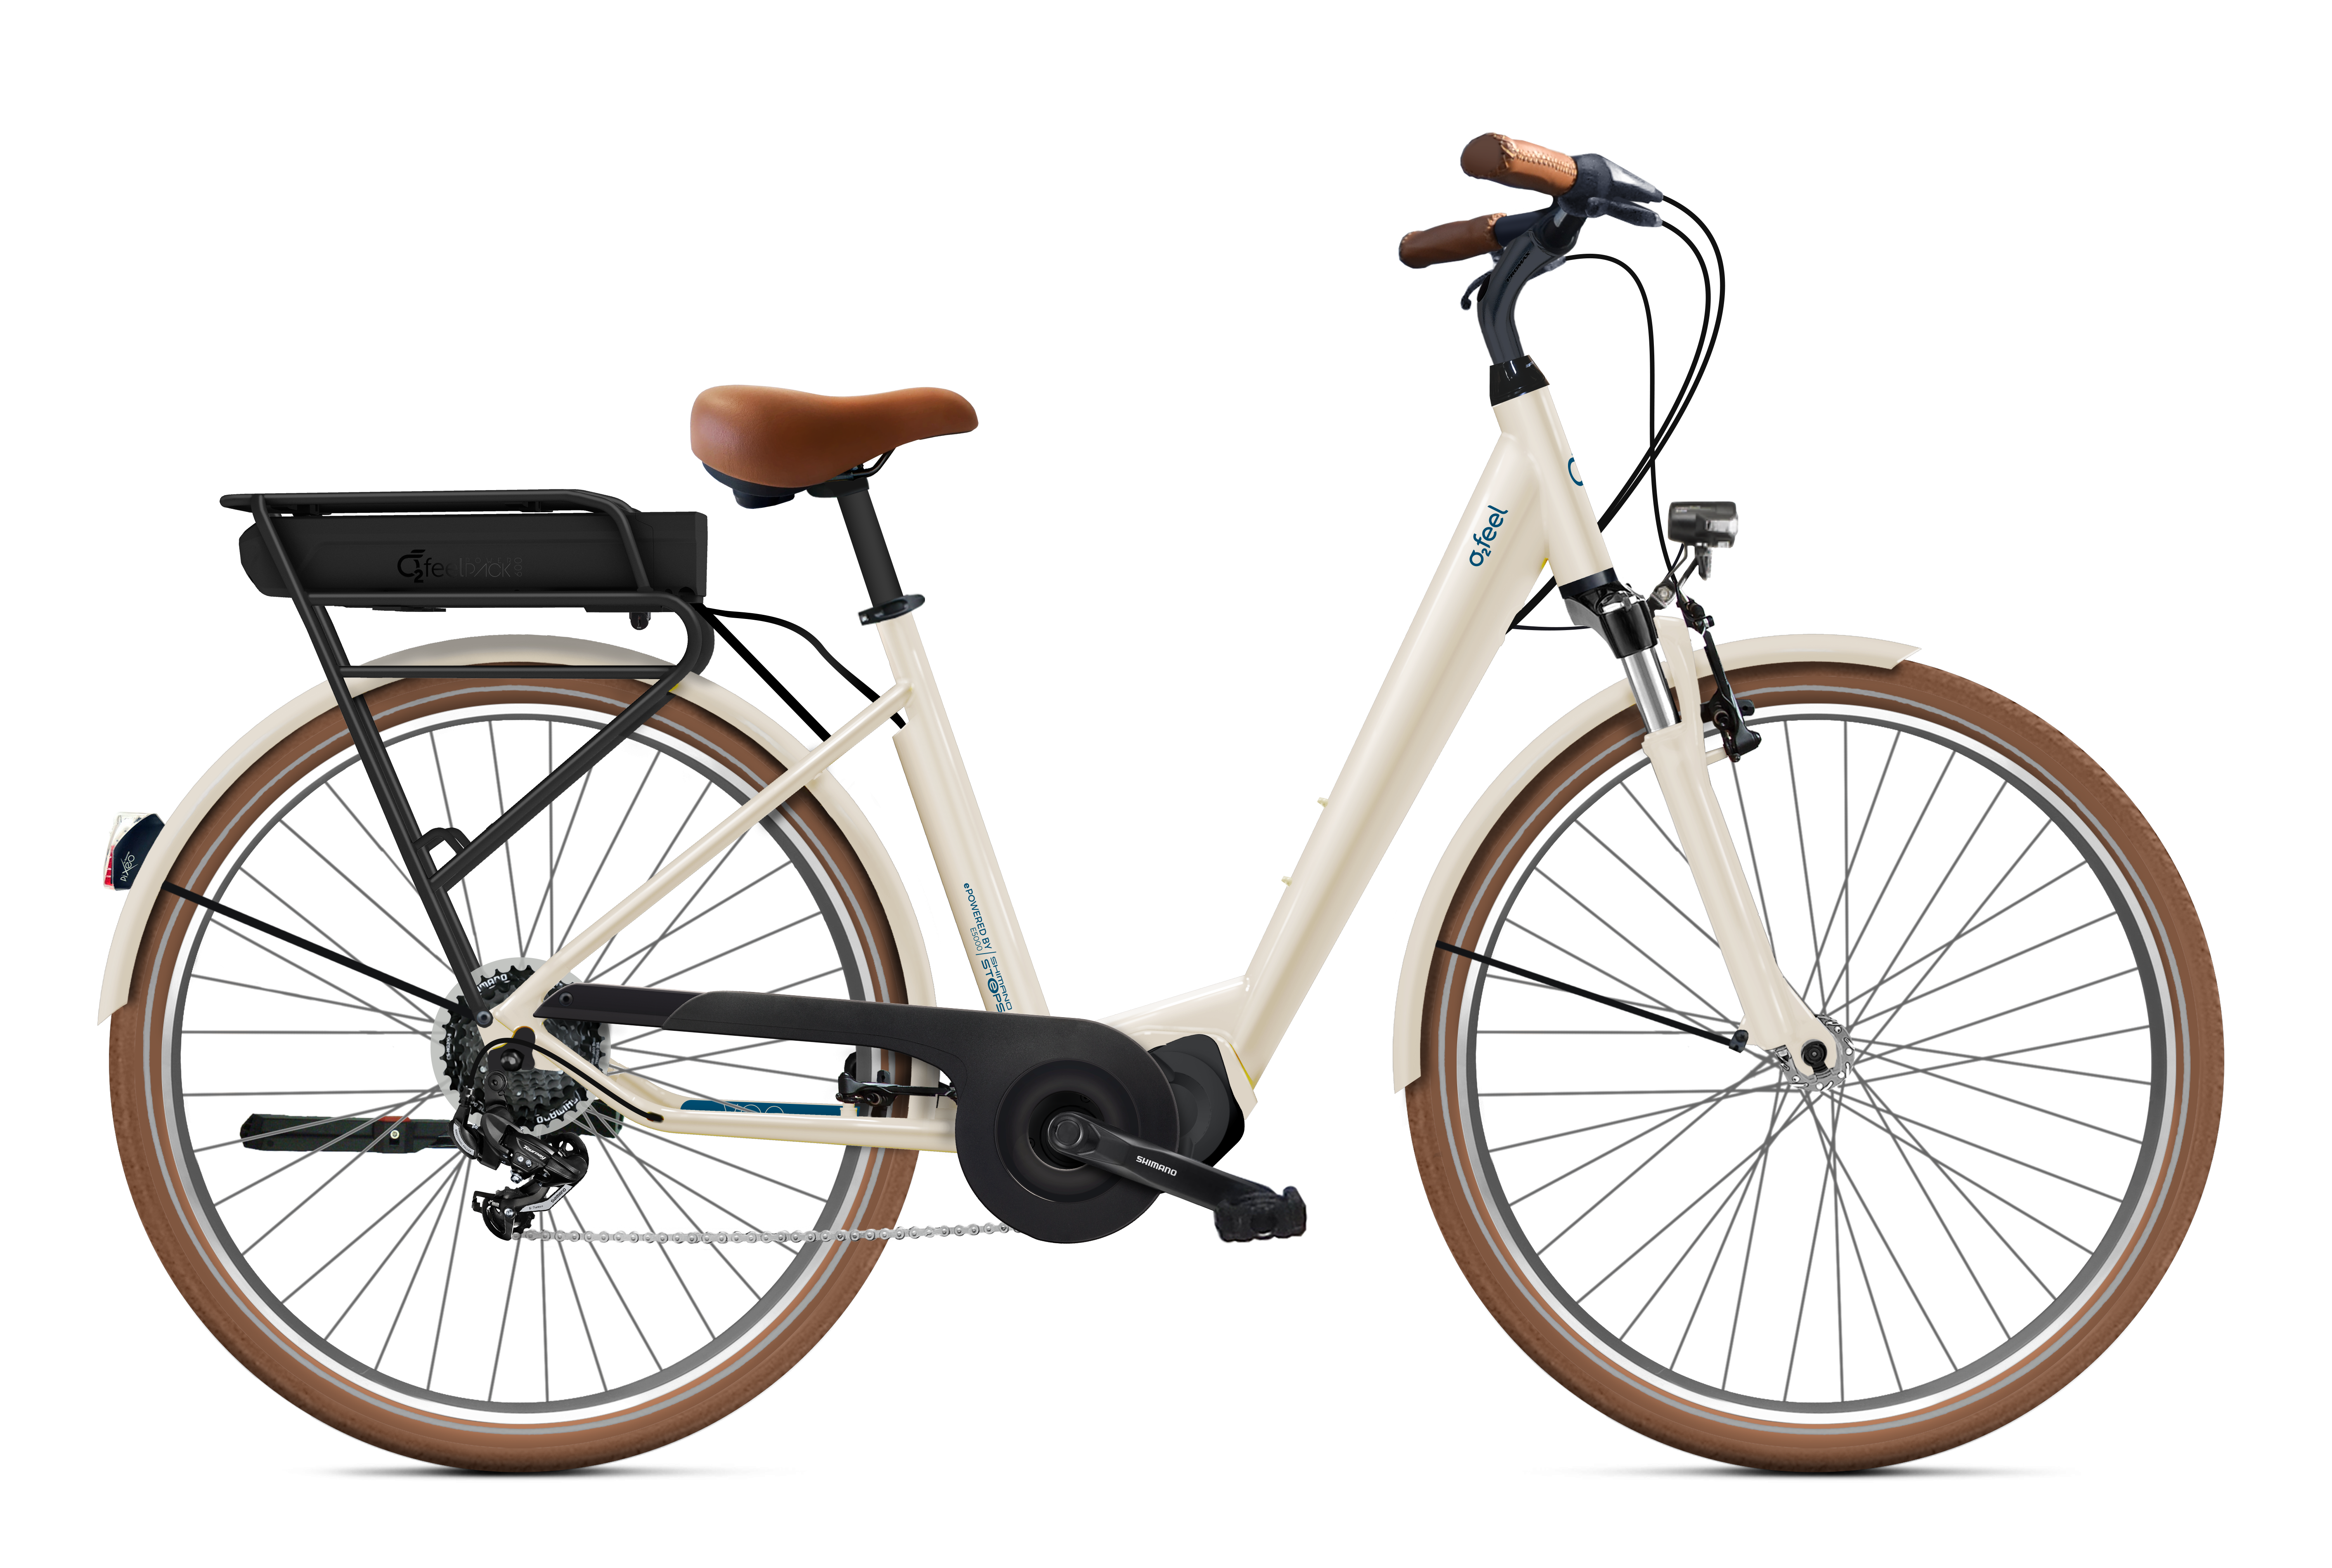 https://w8w5m3f8.stackpathcdn.com/21285-thickbox_extralarge/velo-electrique-urbain-vog-city-up-31-400-ou-600wh.jpg